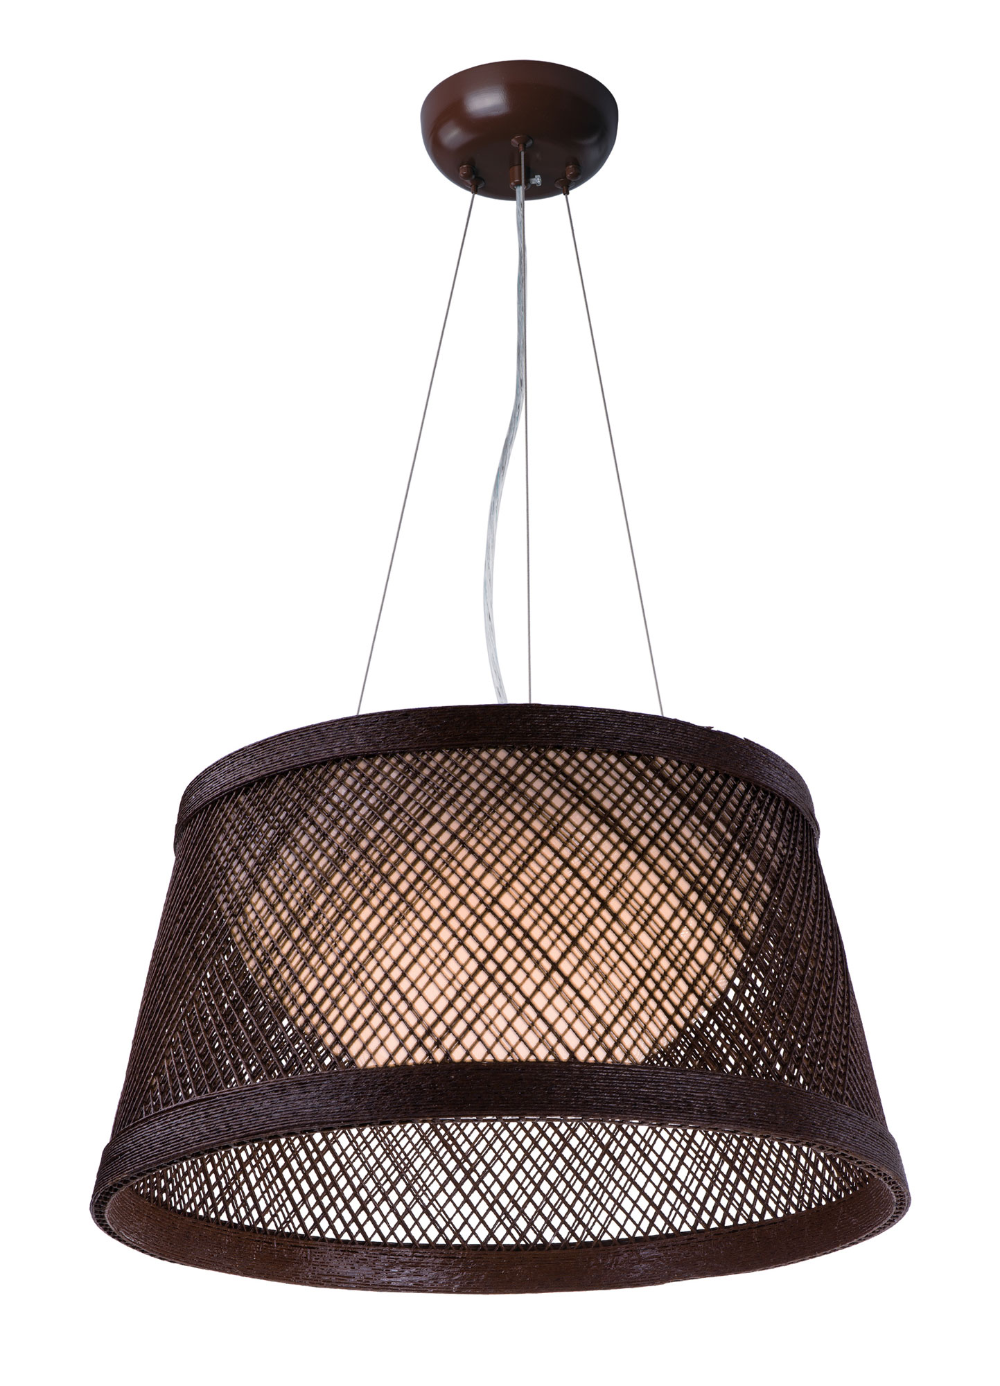 Bahama Pendant By Maxim Lighting 54376na In 2020 Outdoor Pendant Drum Pendant Lighting Maxim Lighting